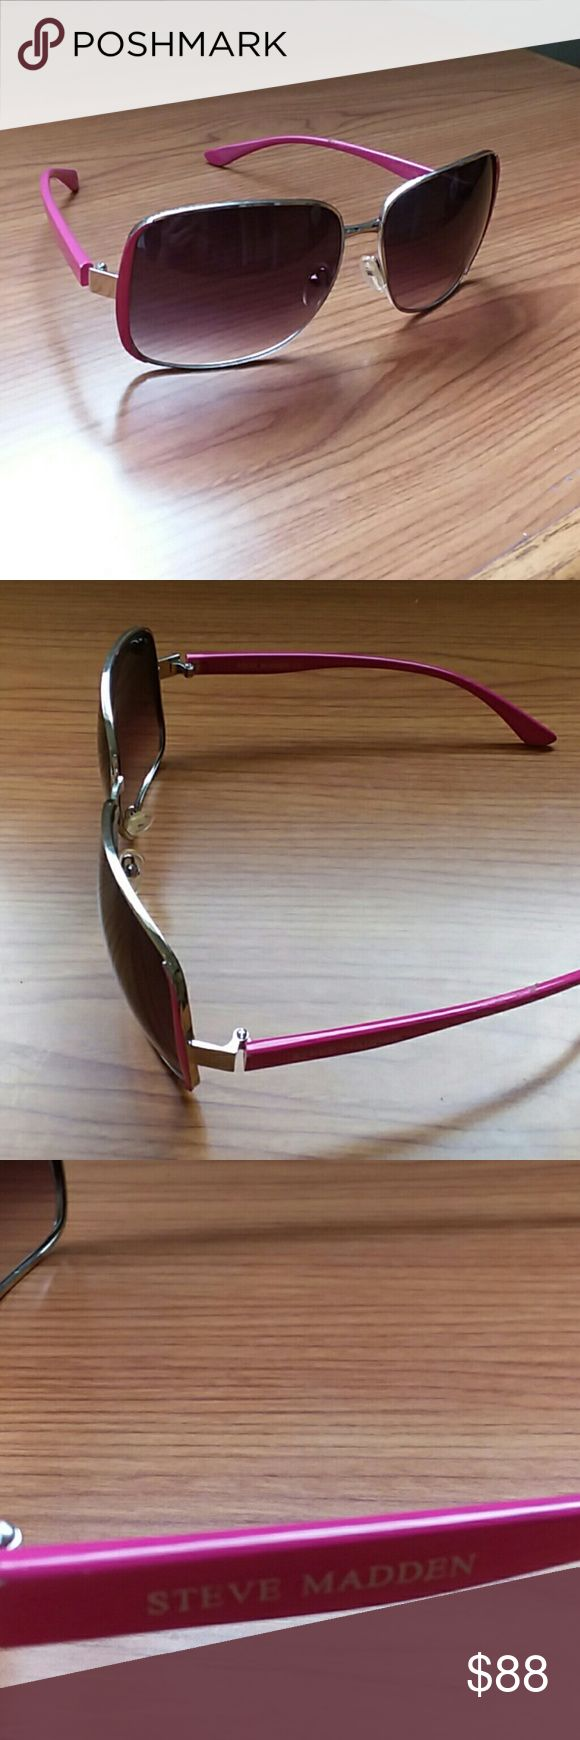 Steve Madden fashion sunglasses.. REALLY PRETTY AND ELEGANT  Steve madden  S5124 fashion sunglasses..pink color..  Add STYLE.             TO YOUR OUTFIT! Excellent CONDITION.. no scratches.. Needs arms adjust. (Any arms adjustment can be done for free at any eyewear store). BUNDLE AND SAVE EXTRA! Steve Madden Accessories Sunglasses